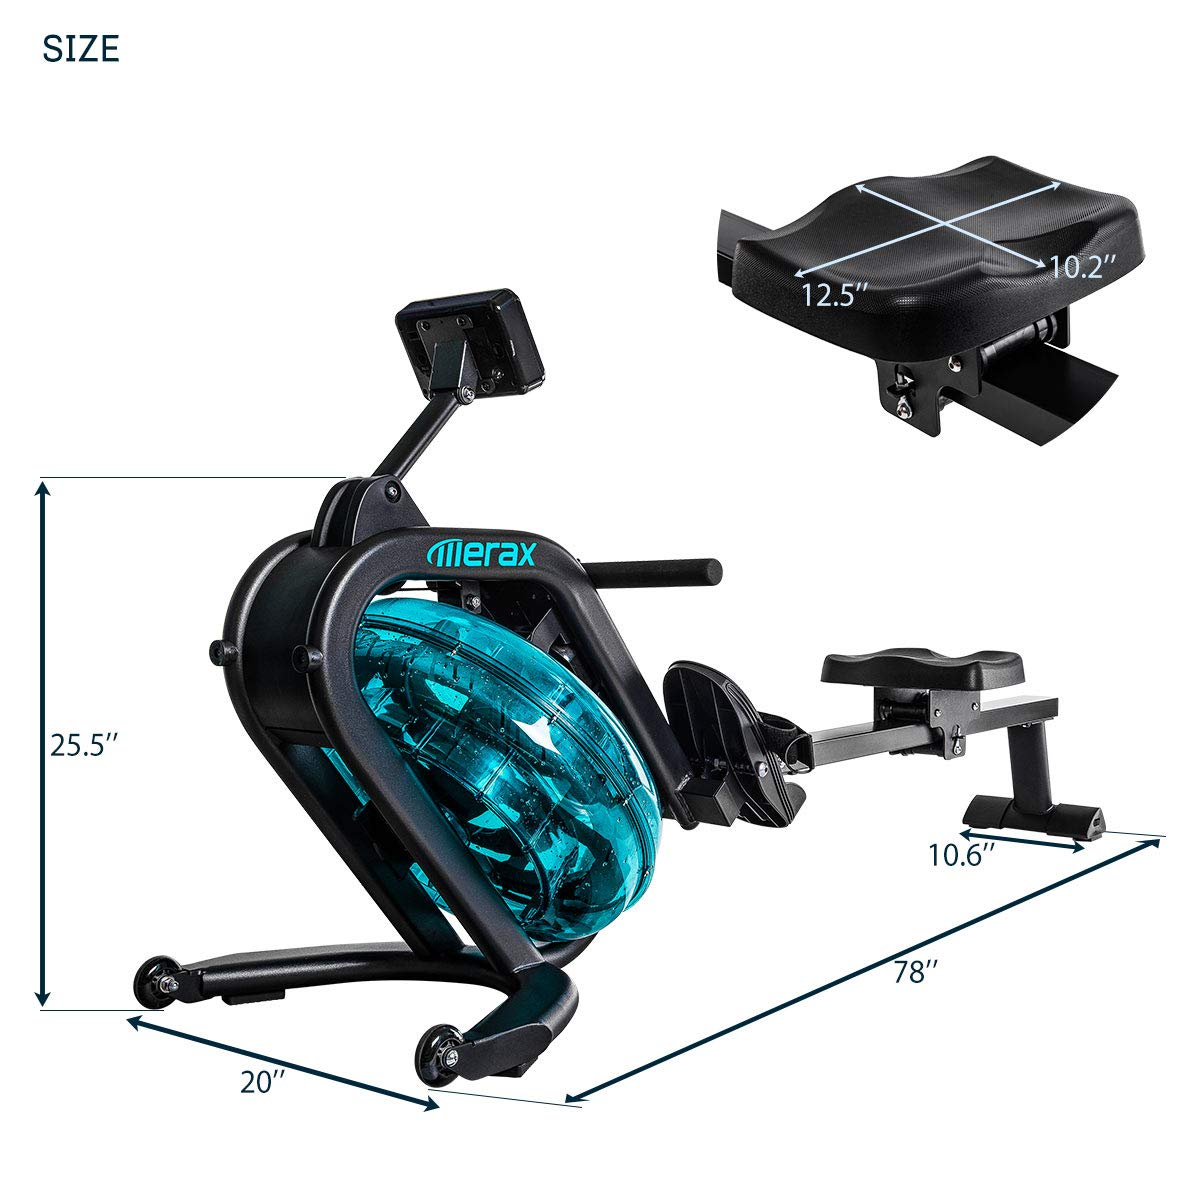 Merax Water Rowing Machine - Fitness Indoor Water Rower with LCD Monitor Home Gym Equipment (Black) by Merax (Image #7)